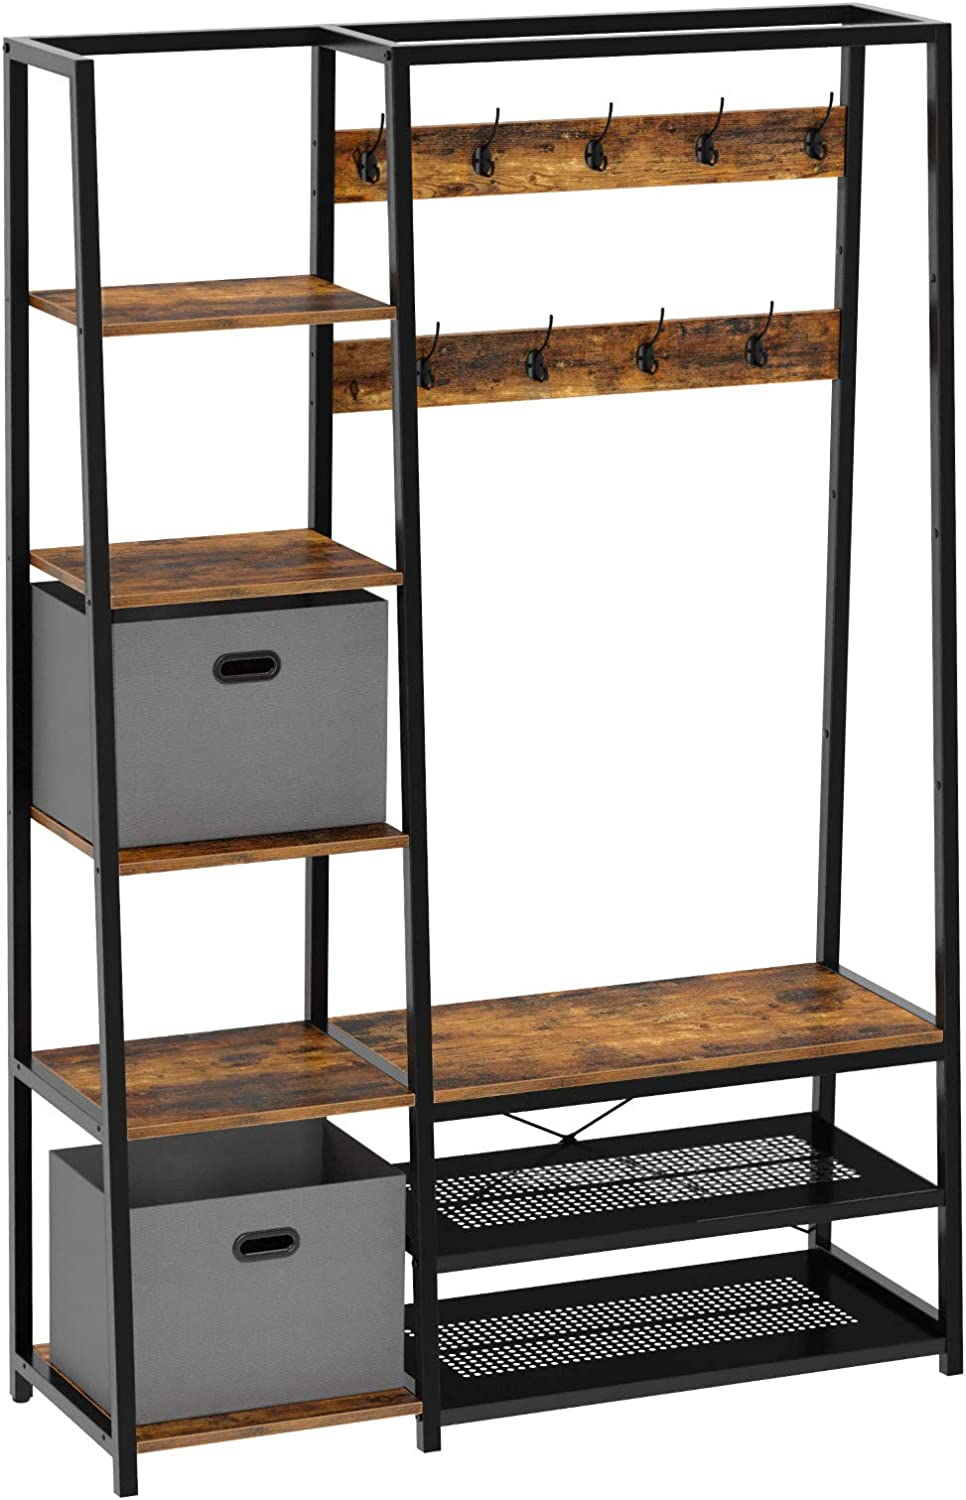 Rolanstar Hall Tree with Side Storage Shelves, Entryway Hall Tree with Shoe Bench and Coat Racks and 2 Foldable Cube Storage Bins,for Entryway, Bedroom, Sturdy and Easy Assembly